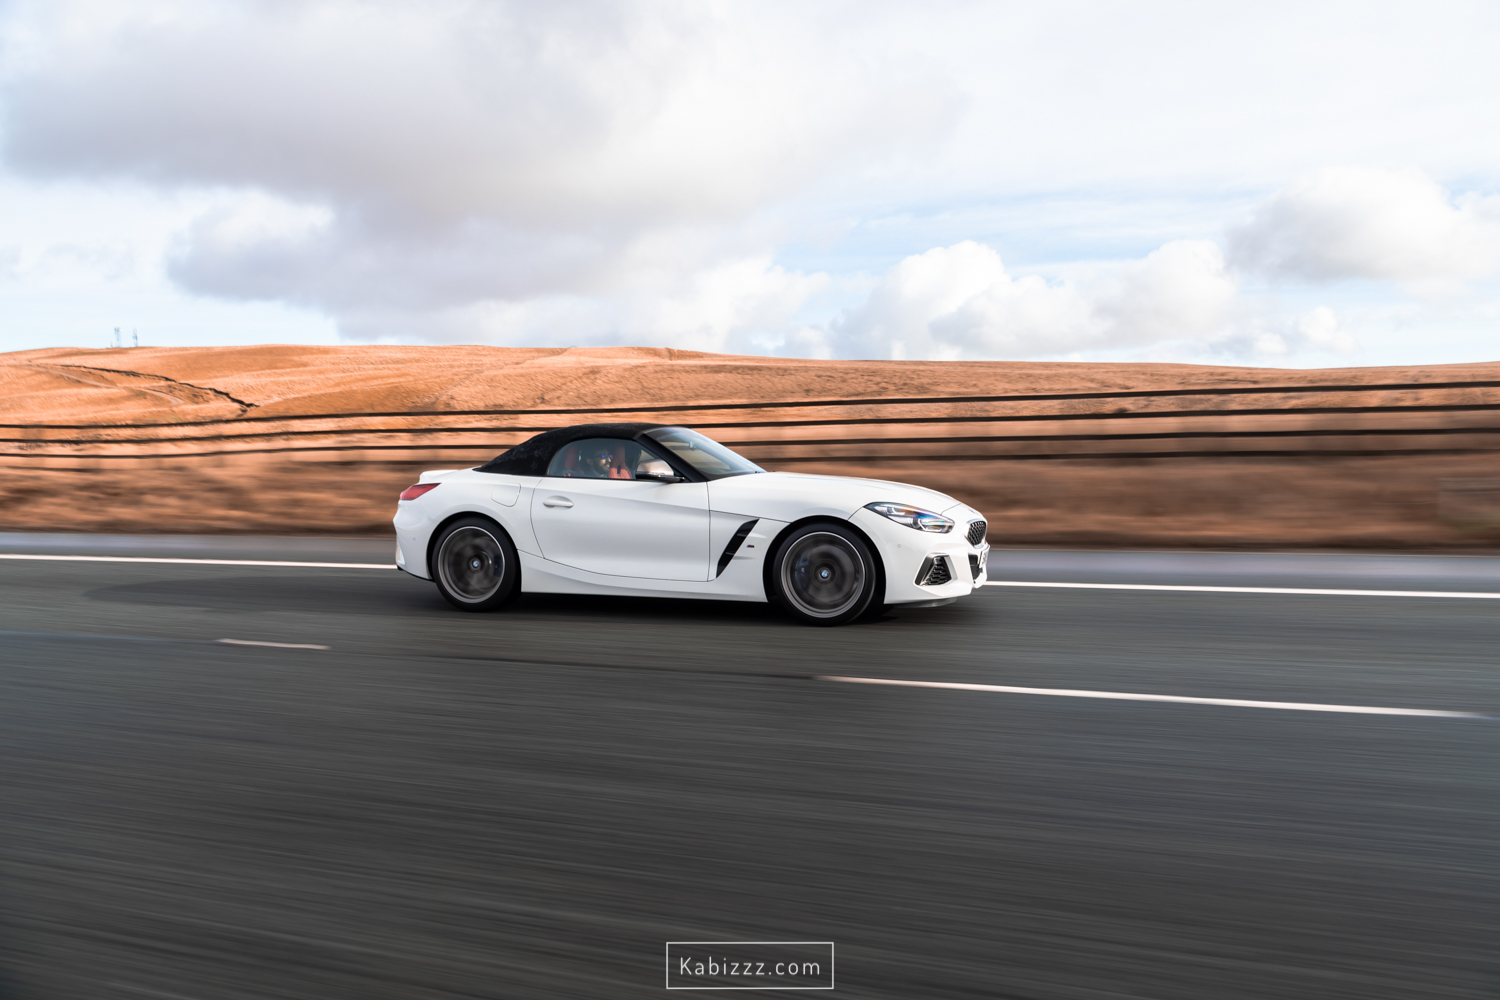 2019_bmw_z4_m40i_automotivephotography_kabizzz.jpg